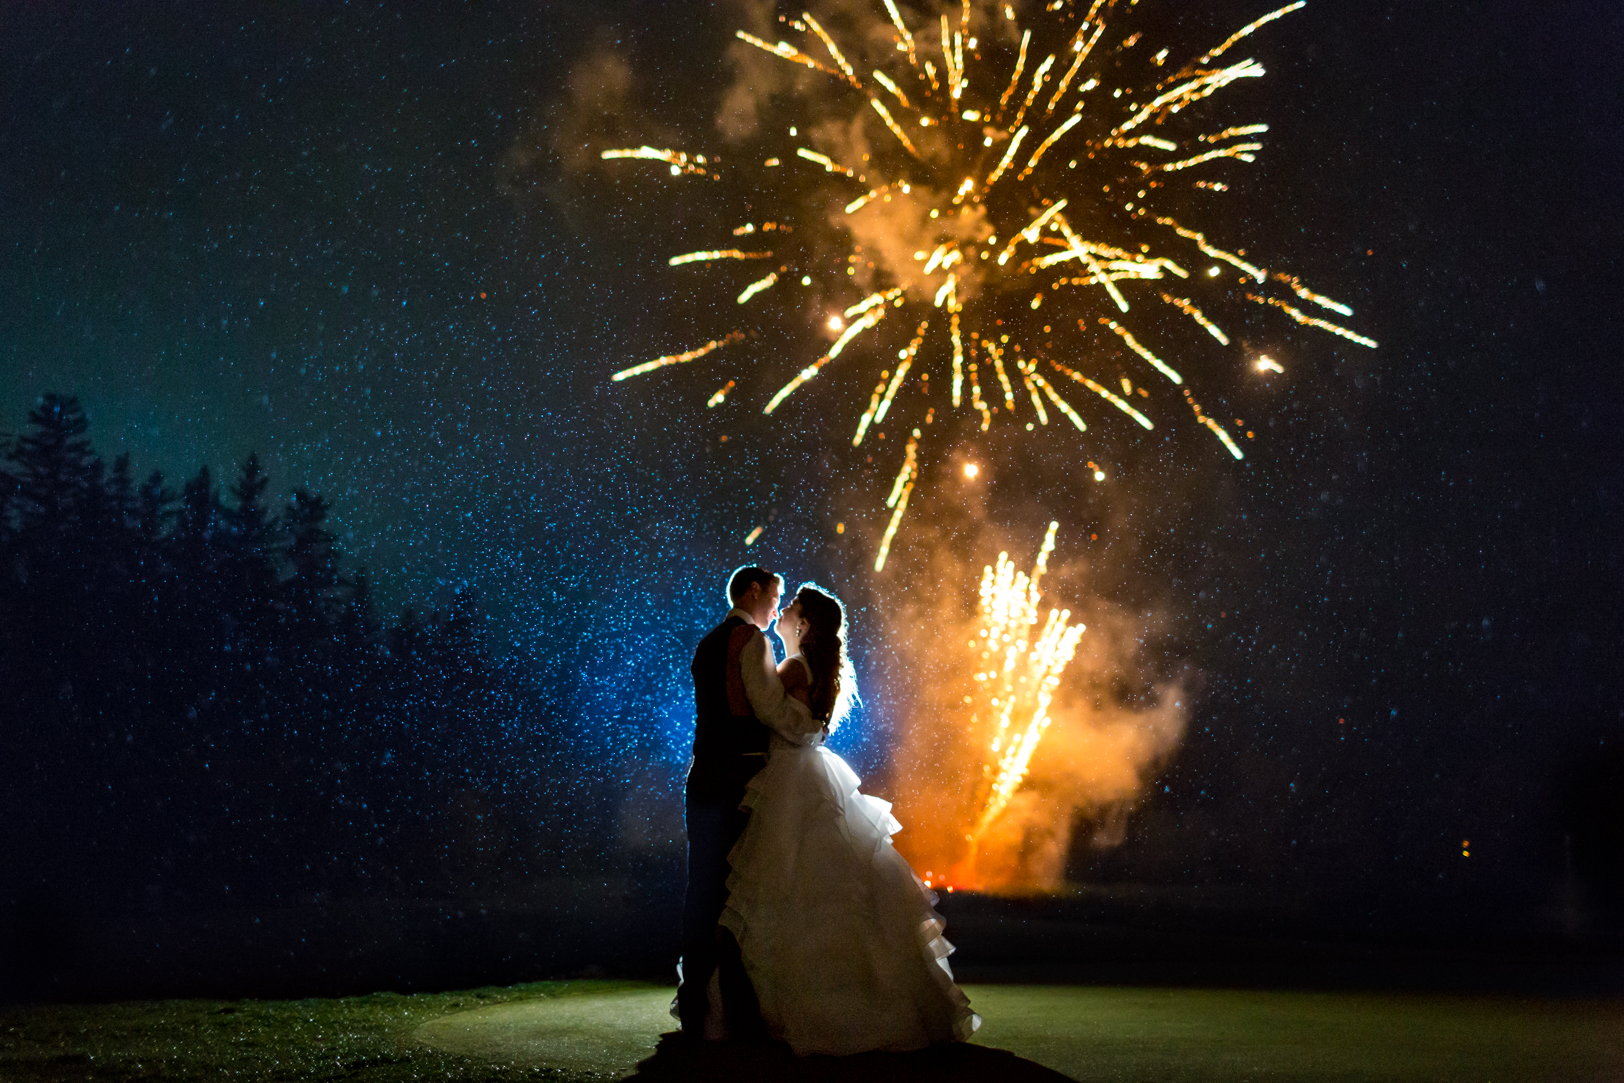 Night Wedding Photos with Fireworks